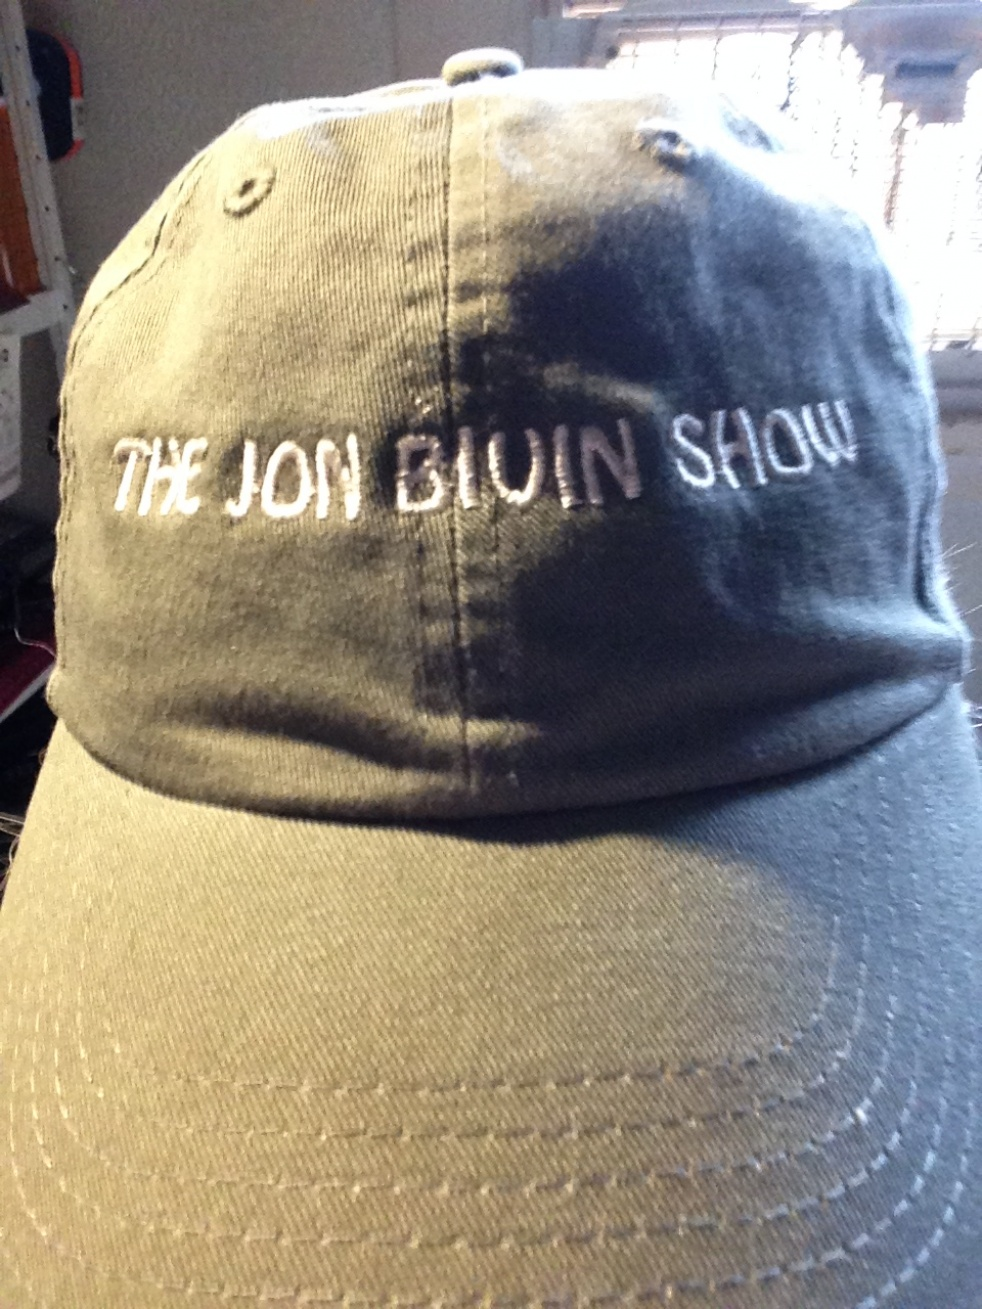 The Jon Bivin Show - Cover Image